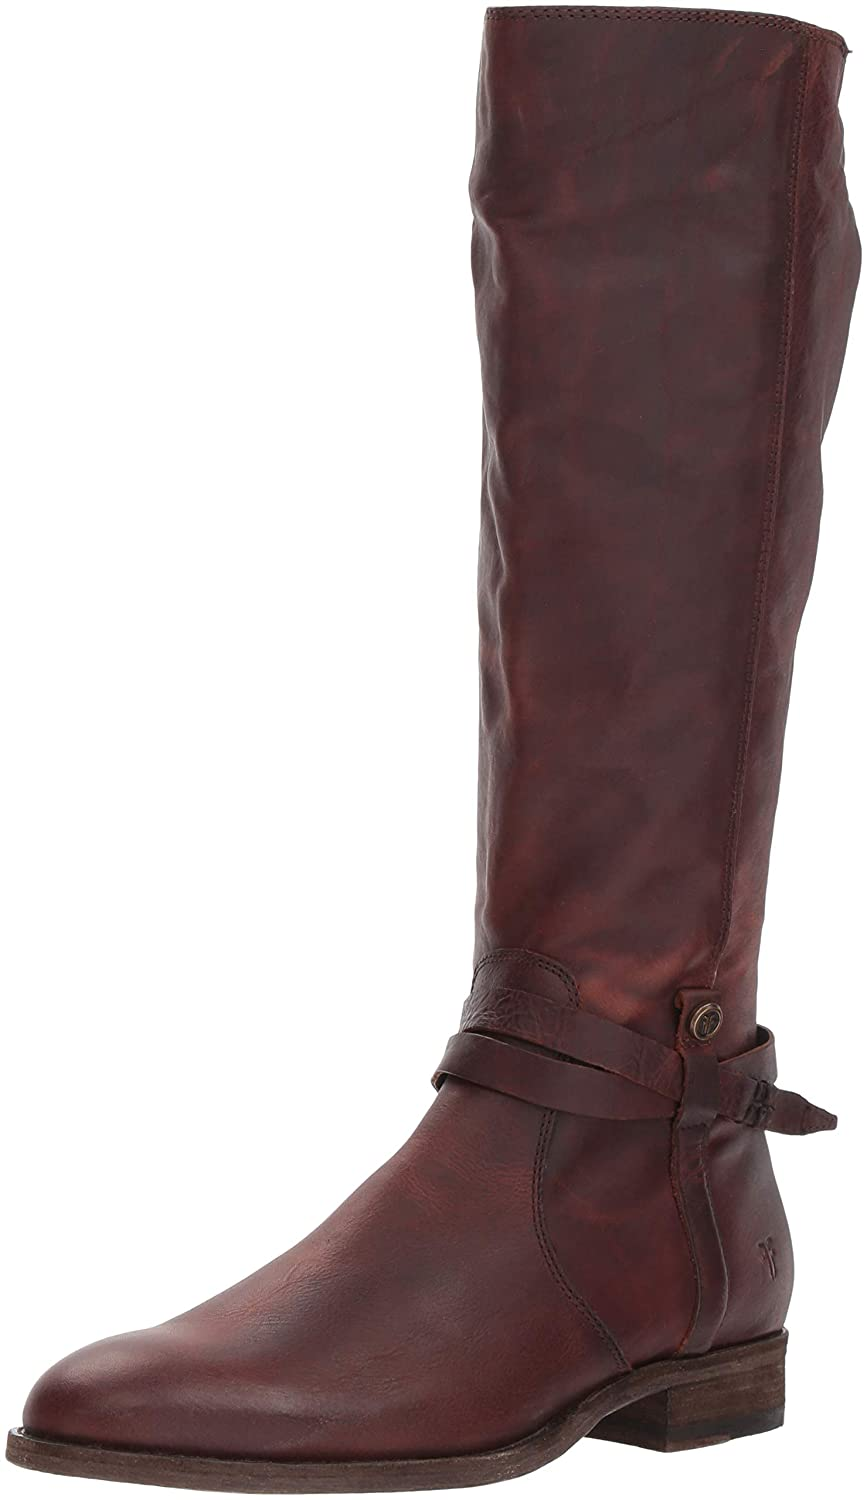 Redwood Frye Women's Melissa Belted Tall Knee High